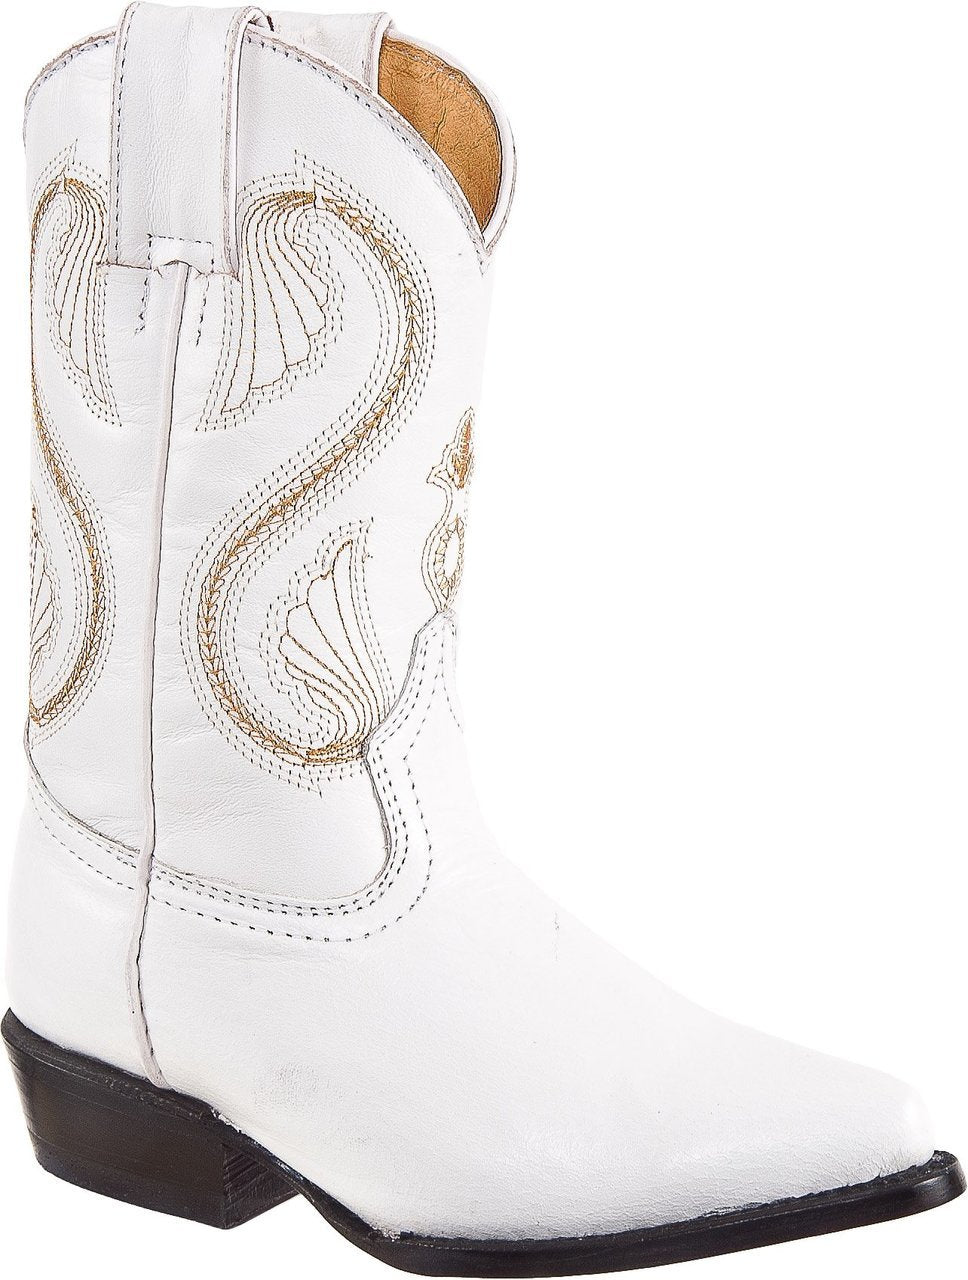 DIEGO'S Kids' White Goat Boots - Pointed Toe